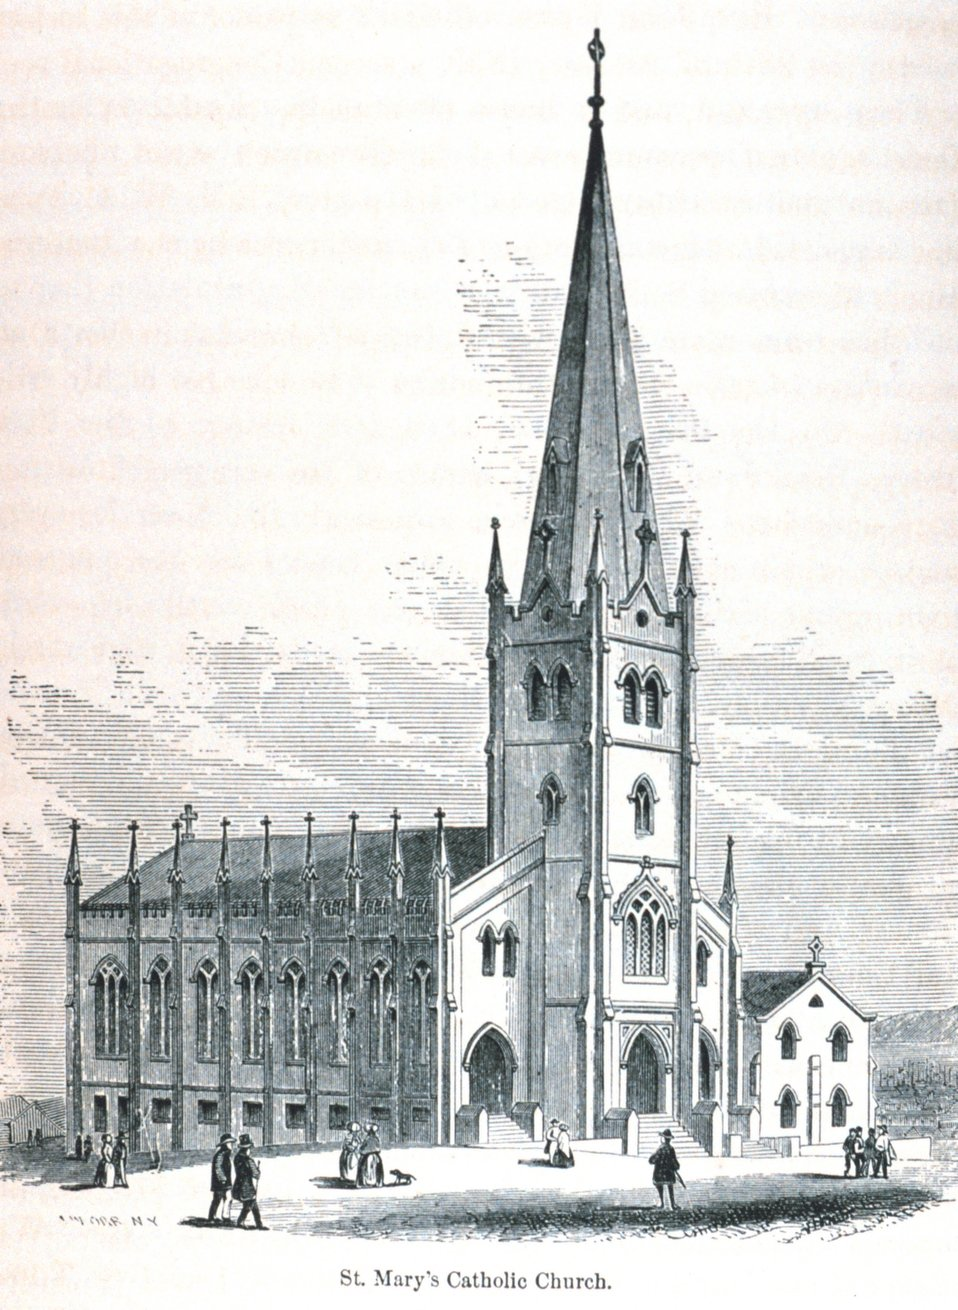 St. Mary's Catholic Church. In: 'The Annals of San Francisco'.  Frank Soule, John Gihon, and James Nesbit.  1855.  Page 698.  D. Appleton & Company, New York.  F869.S3.S7 1855.